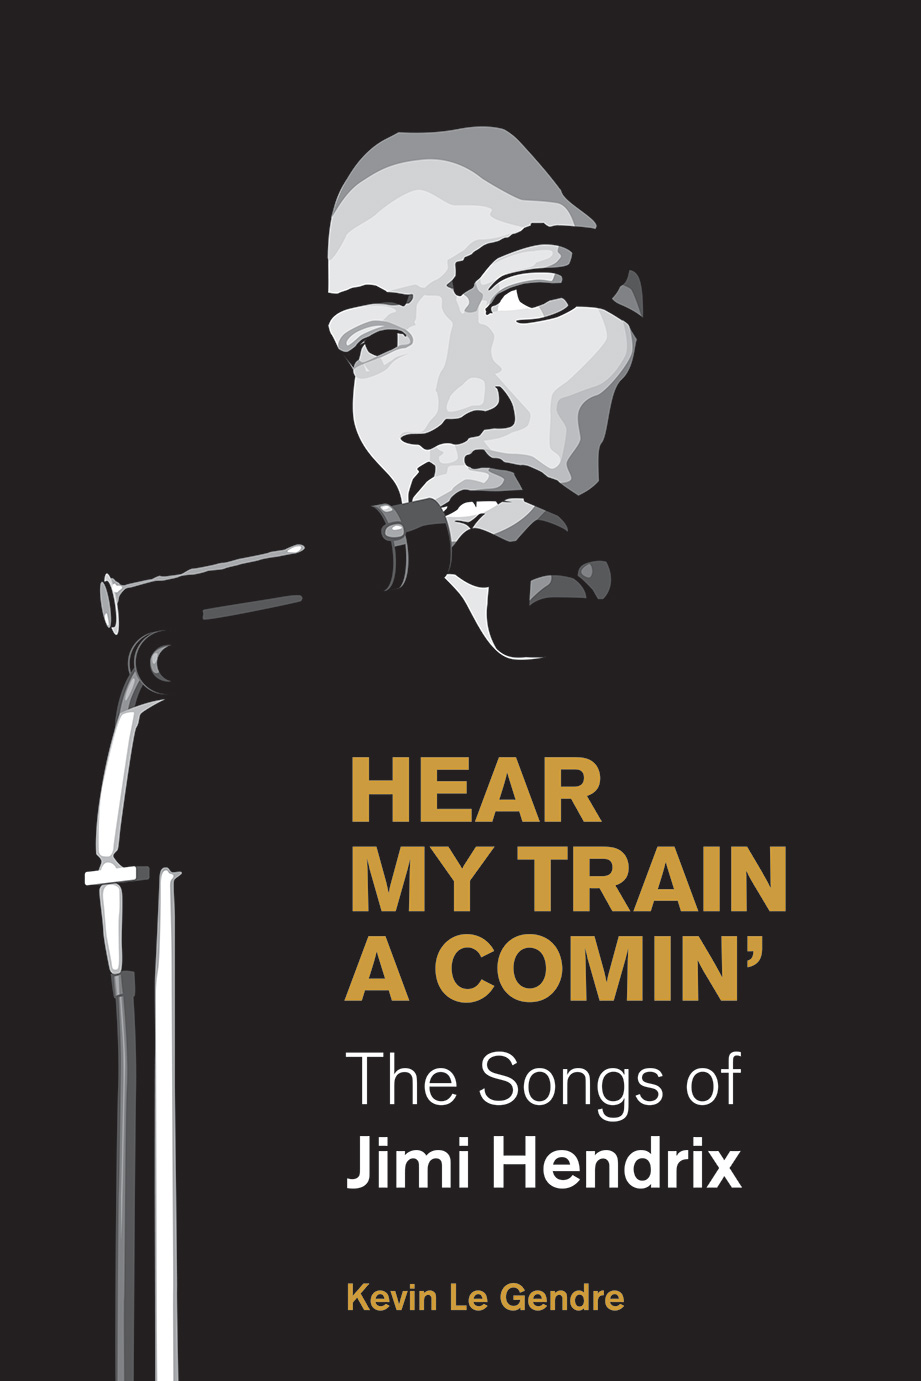 Hear My Train A Comin' - The Songs of Jimi Hendrix - Kevin Le Gendre